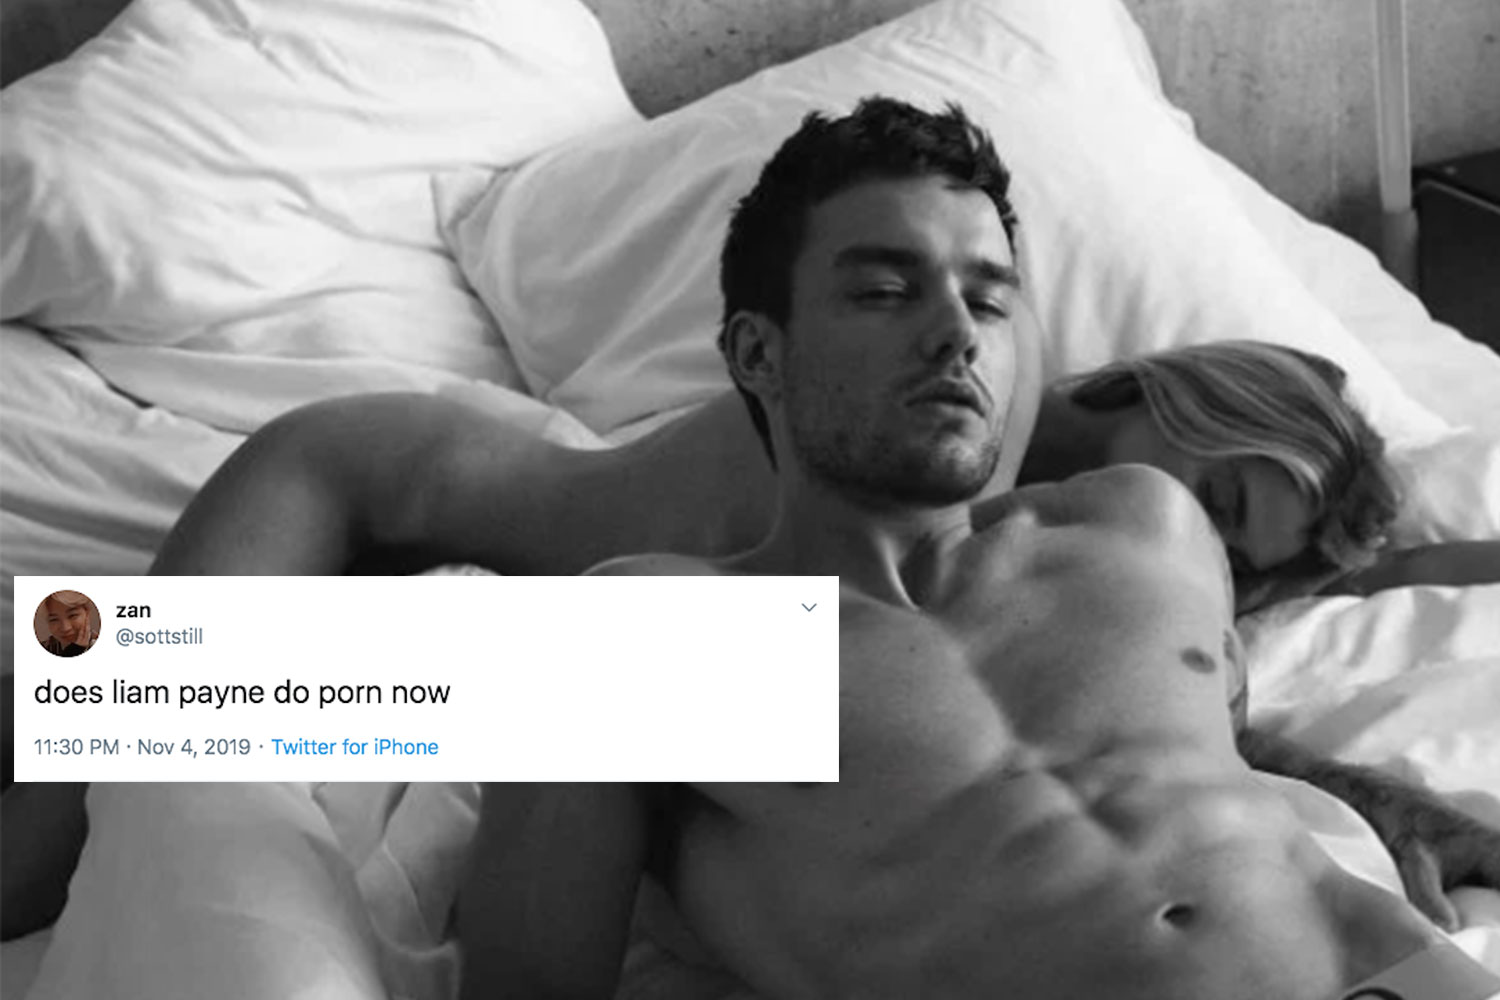 Niall Horan Look Alike Porn fans call liam payne's new shoot 'softcore porn' | girlfriend